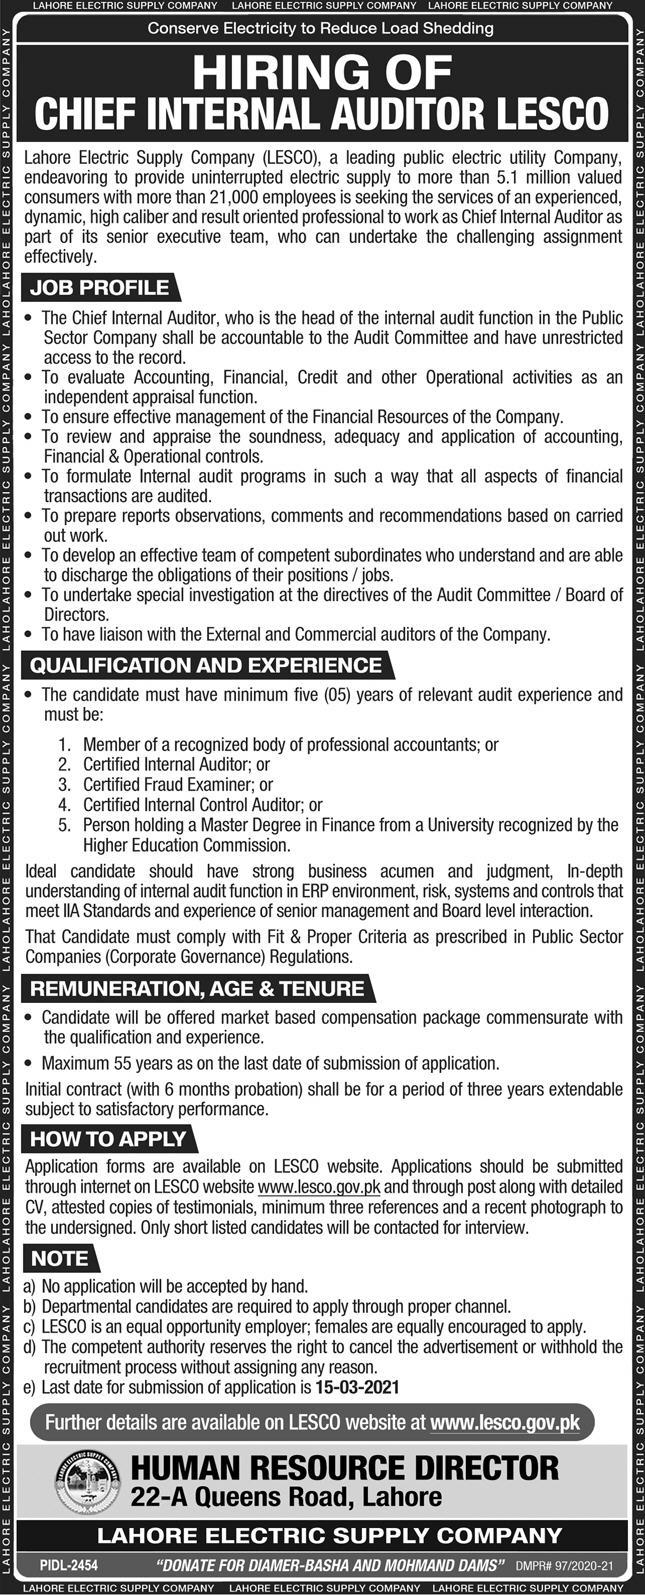 Lahore Electric Supply Company LESCO Jobs 2021 in Lahore